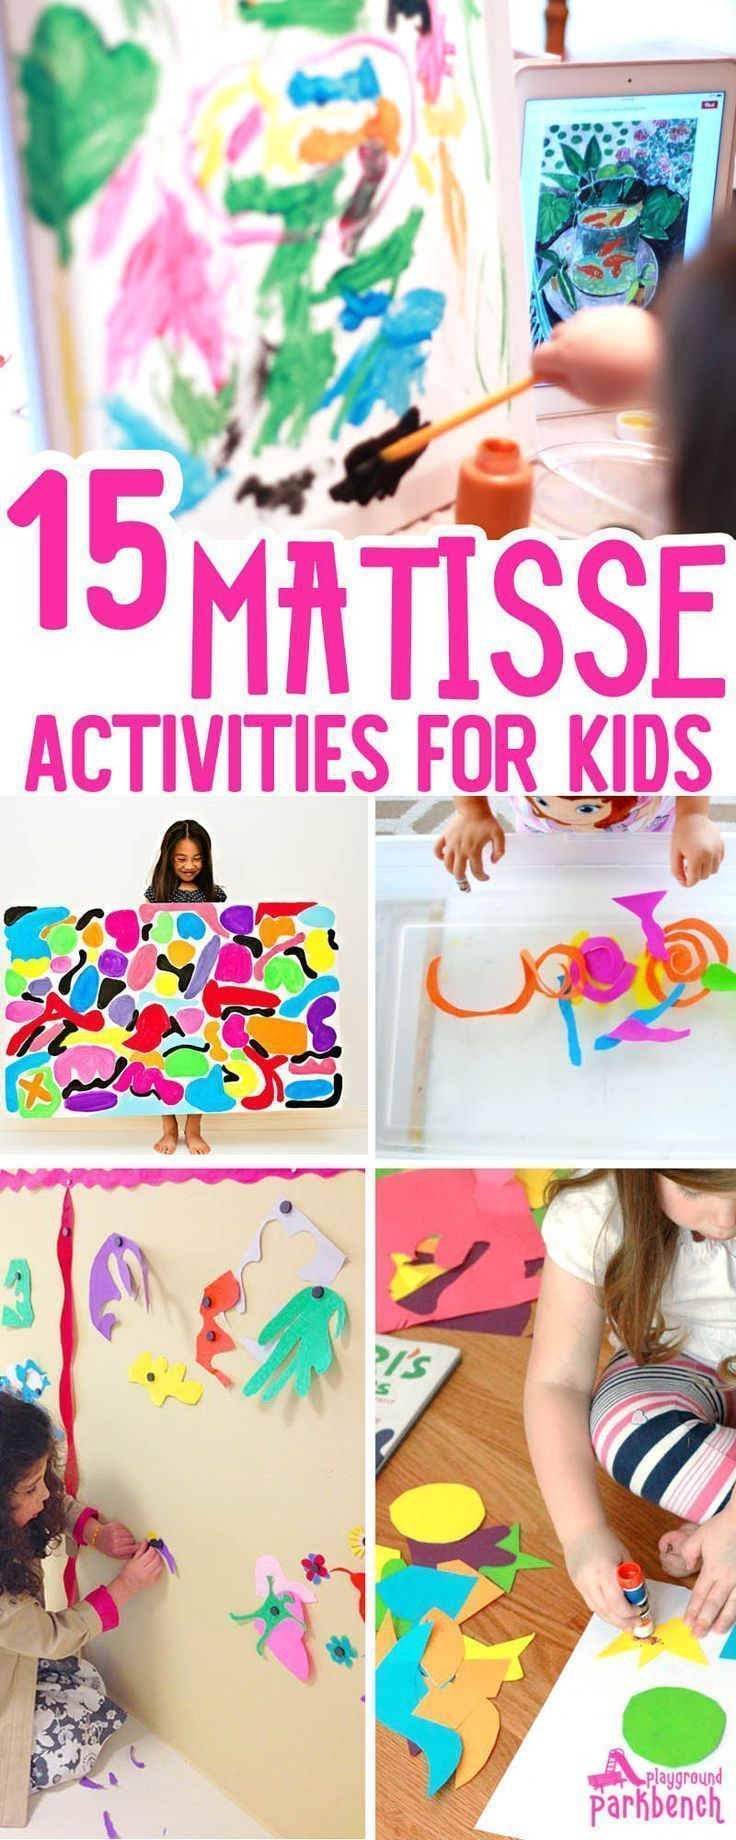 Matisse Art Projects for Kids - art and hands-on activities inspired by the bold colors and organic shapes used by Henri Matisse. An awesome Art Study for Kids of all ages | Art for Kids | Art for Preschool | #MulticulturalArtsandCrafts